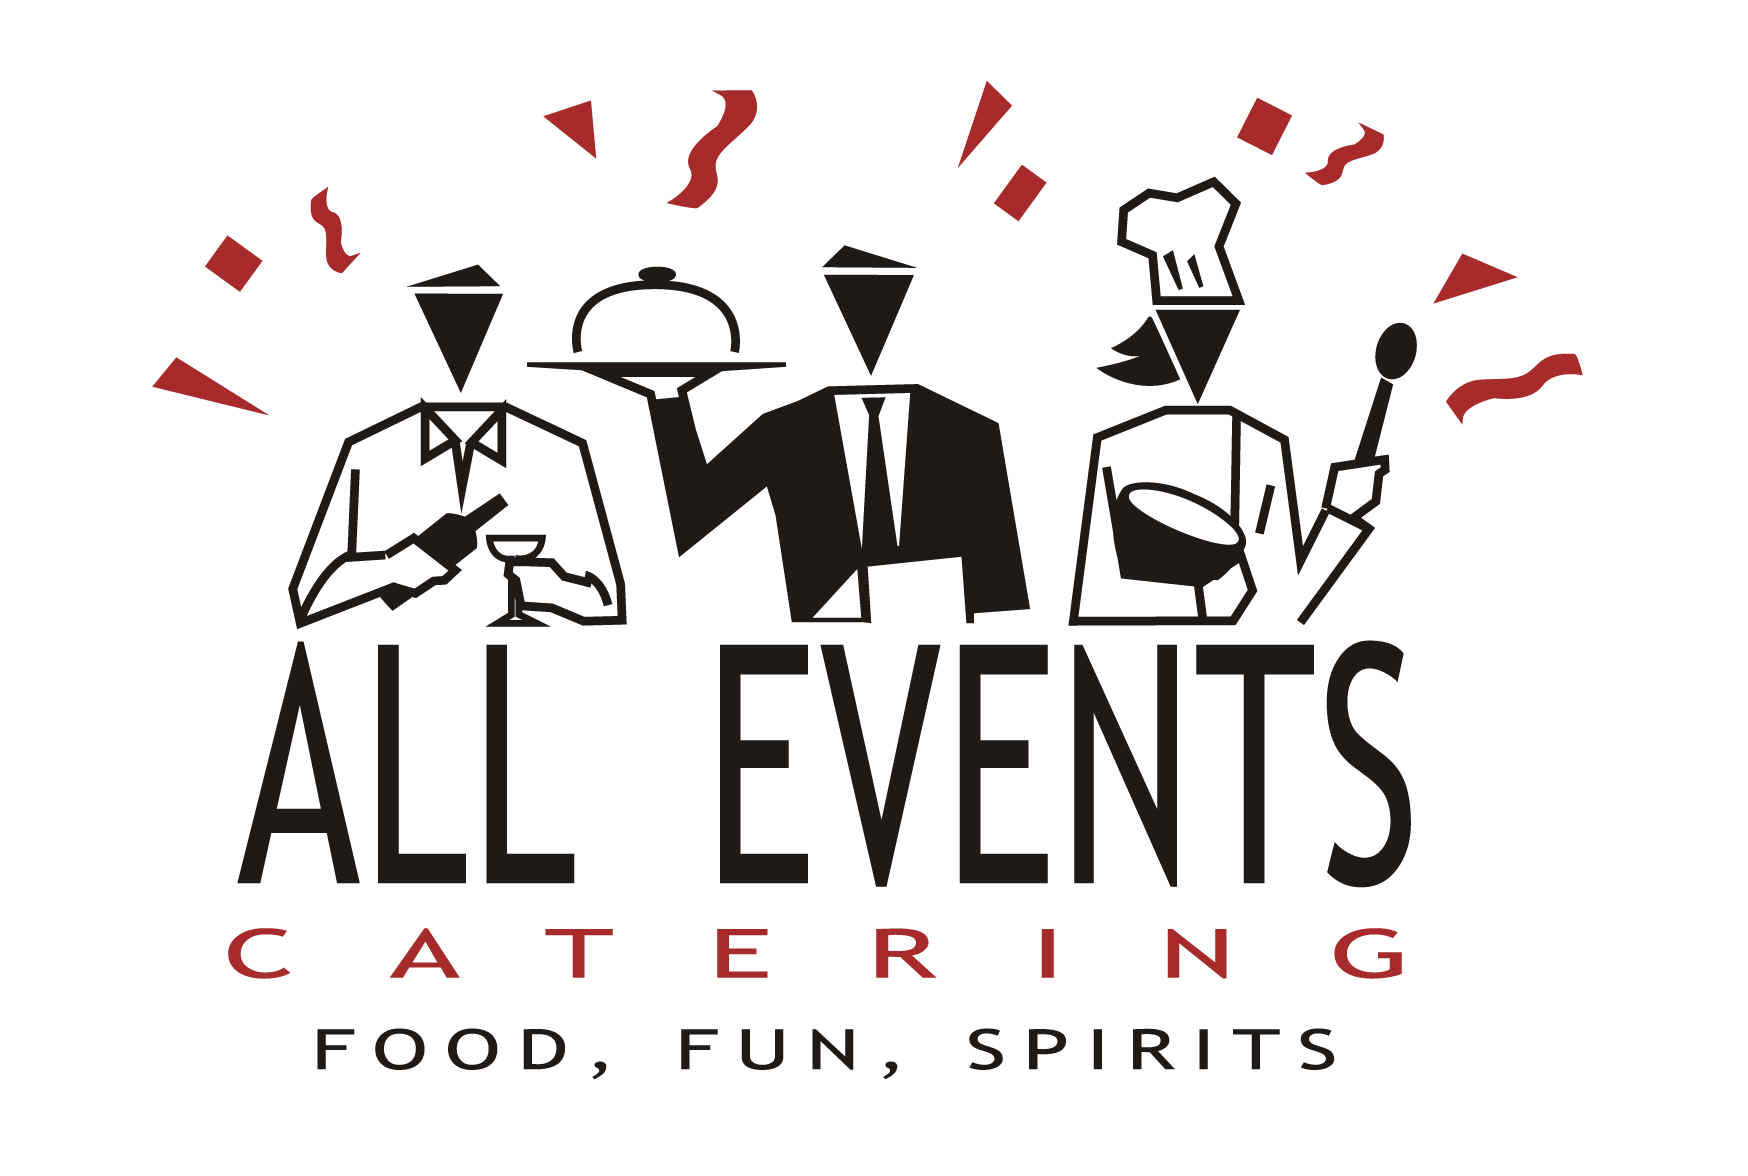 Catering Business Clip Art.